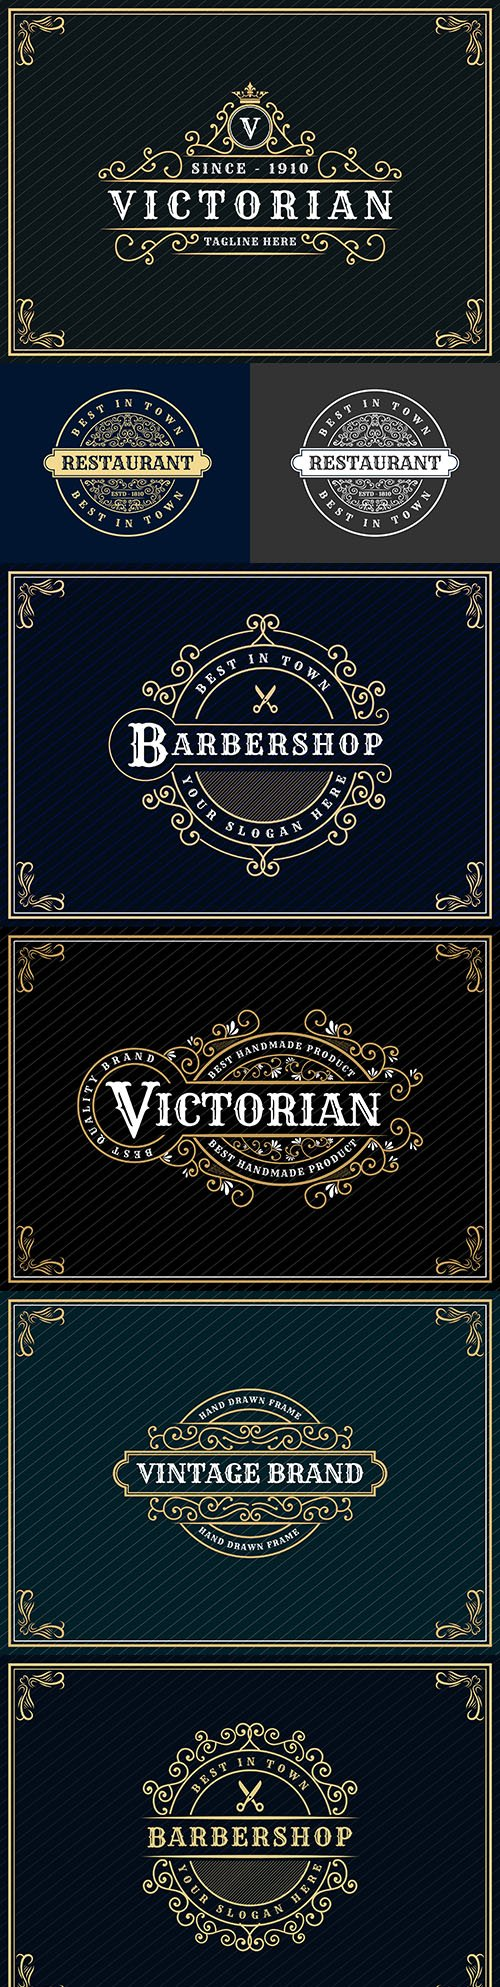 Luxury royal vintage design logo with decorative frame